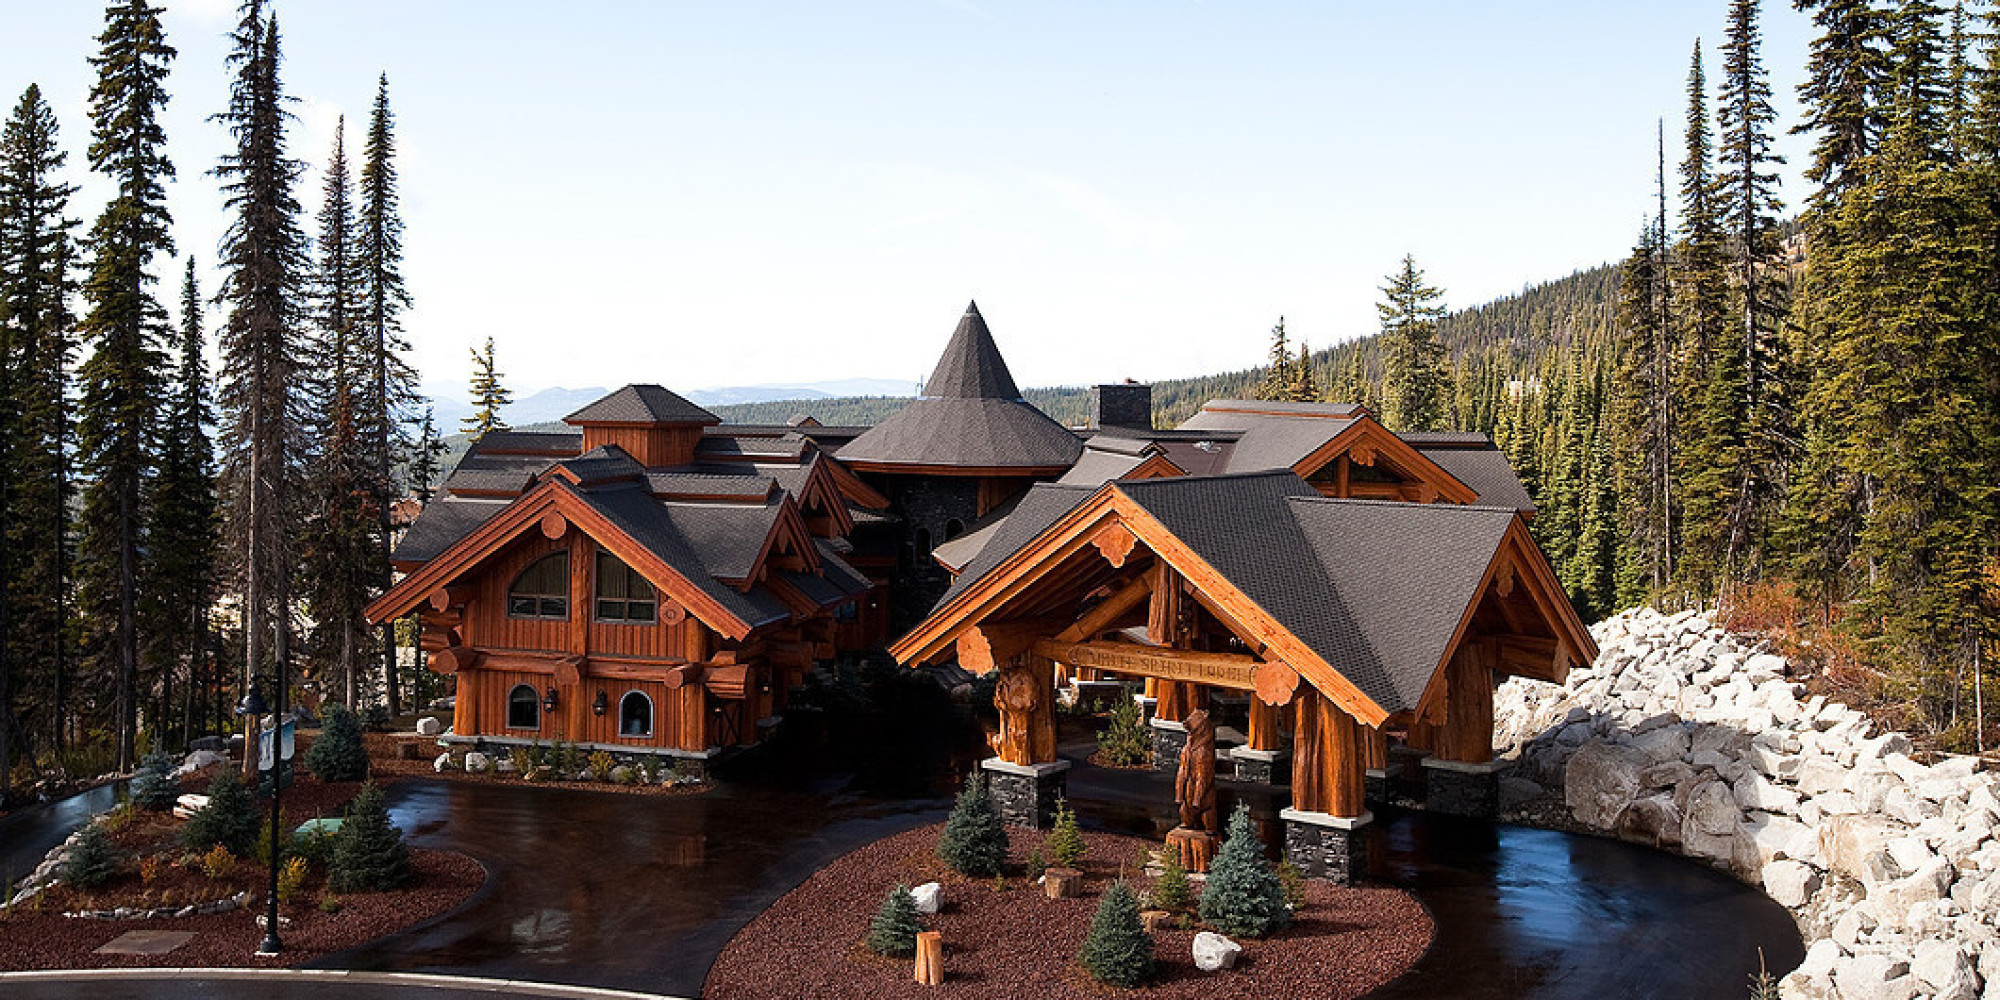 Big White Luxury Log Castle Crafted From Centuries Old Trees PHOTOS